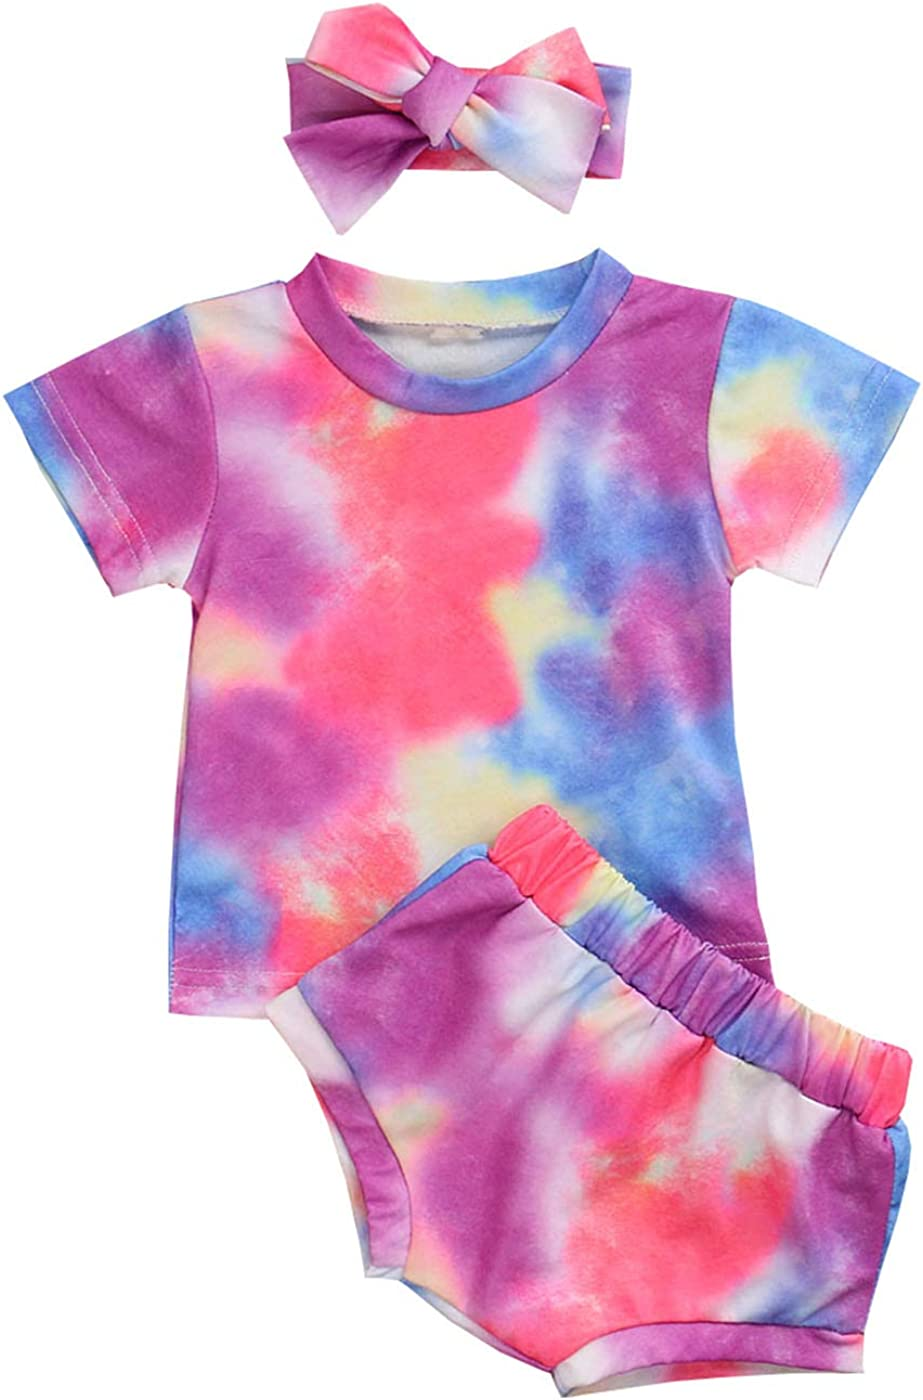 Toddler Baby Girl Tie-Dye T-Shirt Short Sleeve Top and Short 3PCS Tie-Dye Shorts Set Summer Clothes